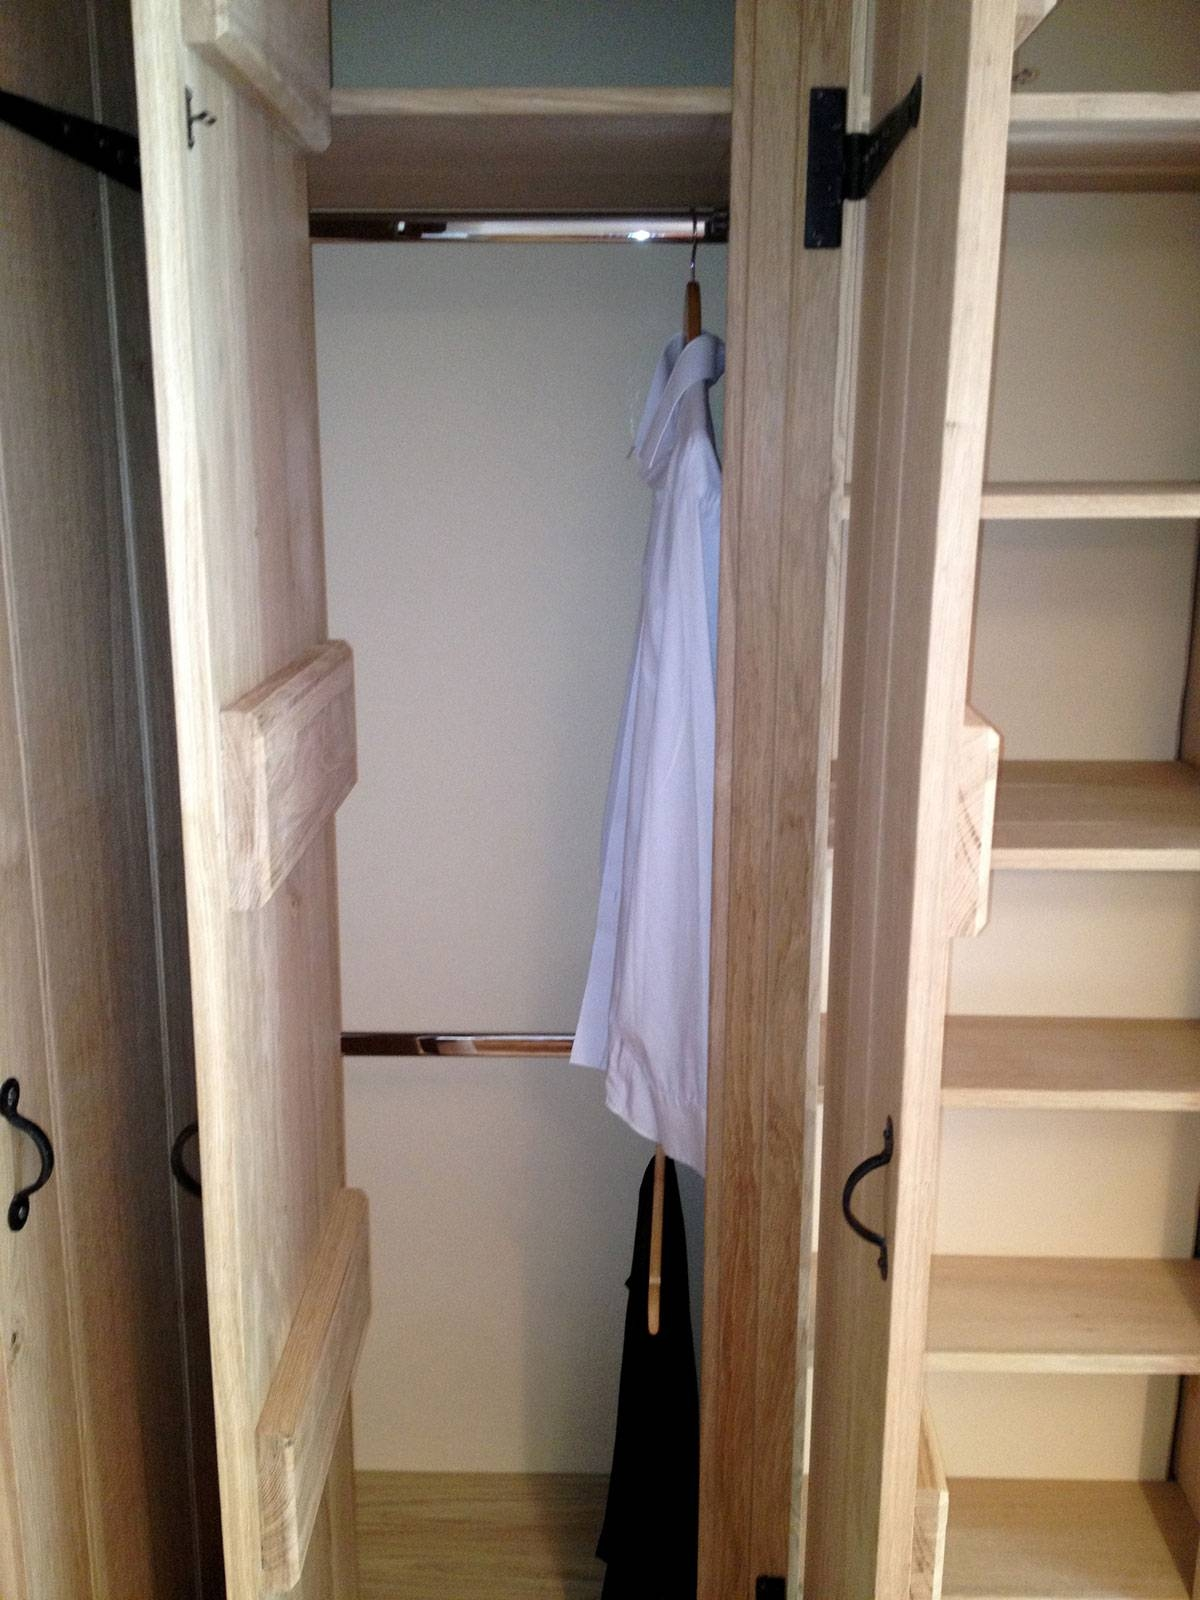 Fitted Wardrobes, Norwich - The Norfolk Carpenter regarding Solid Wood Fitted Wardrobes (Image 15 of 30)